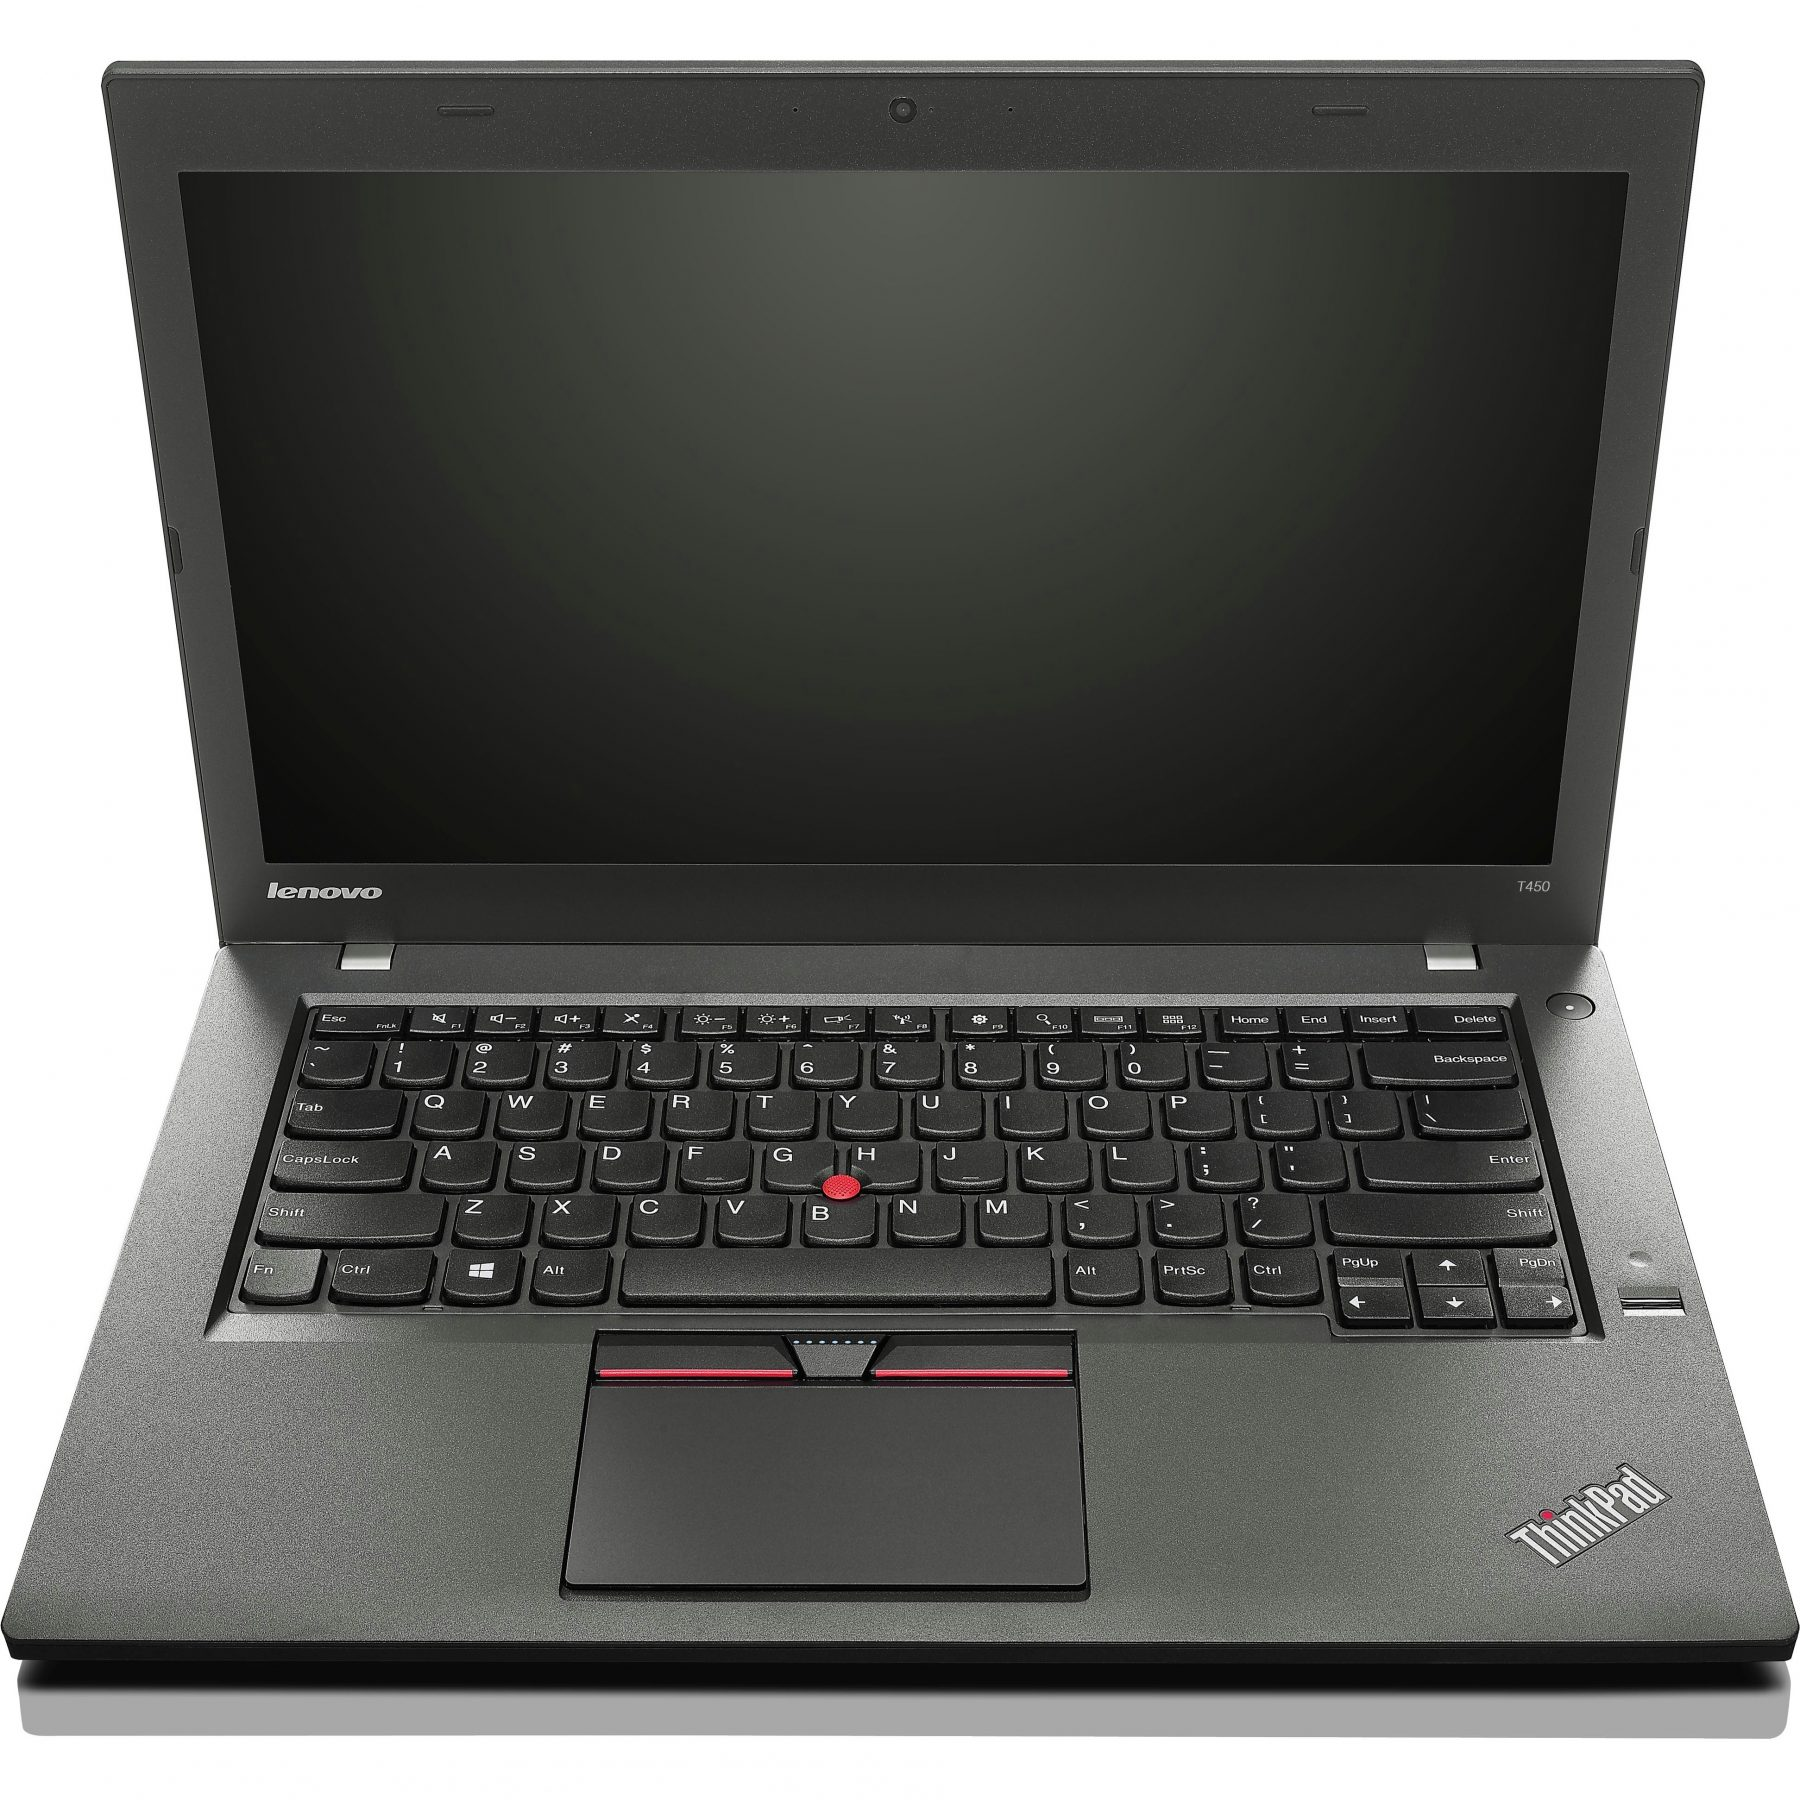 Lenovo Laptop Sold Out Easydeal August 3 2016 Lenovo Thinkpad Laptop Computer